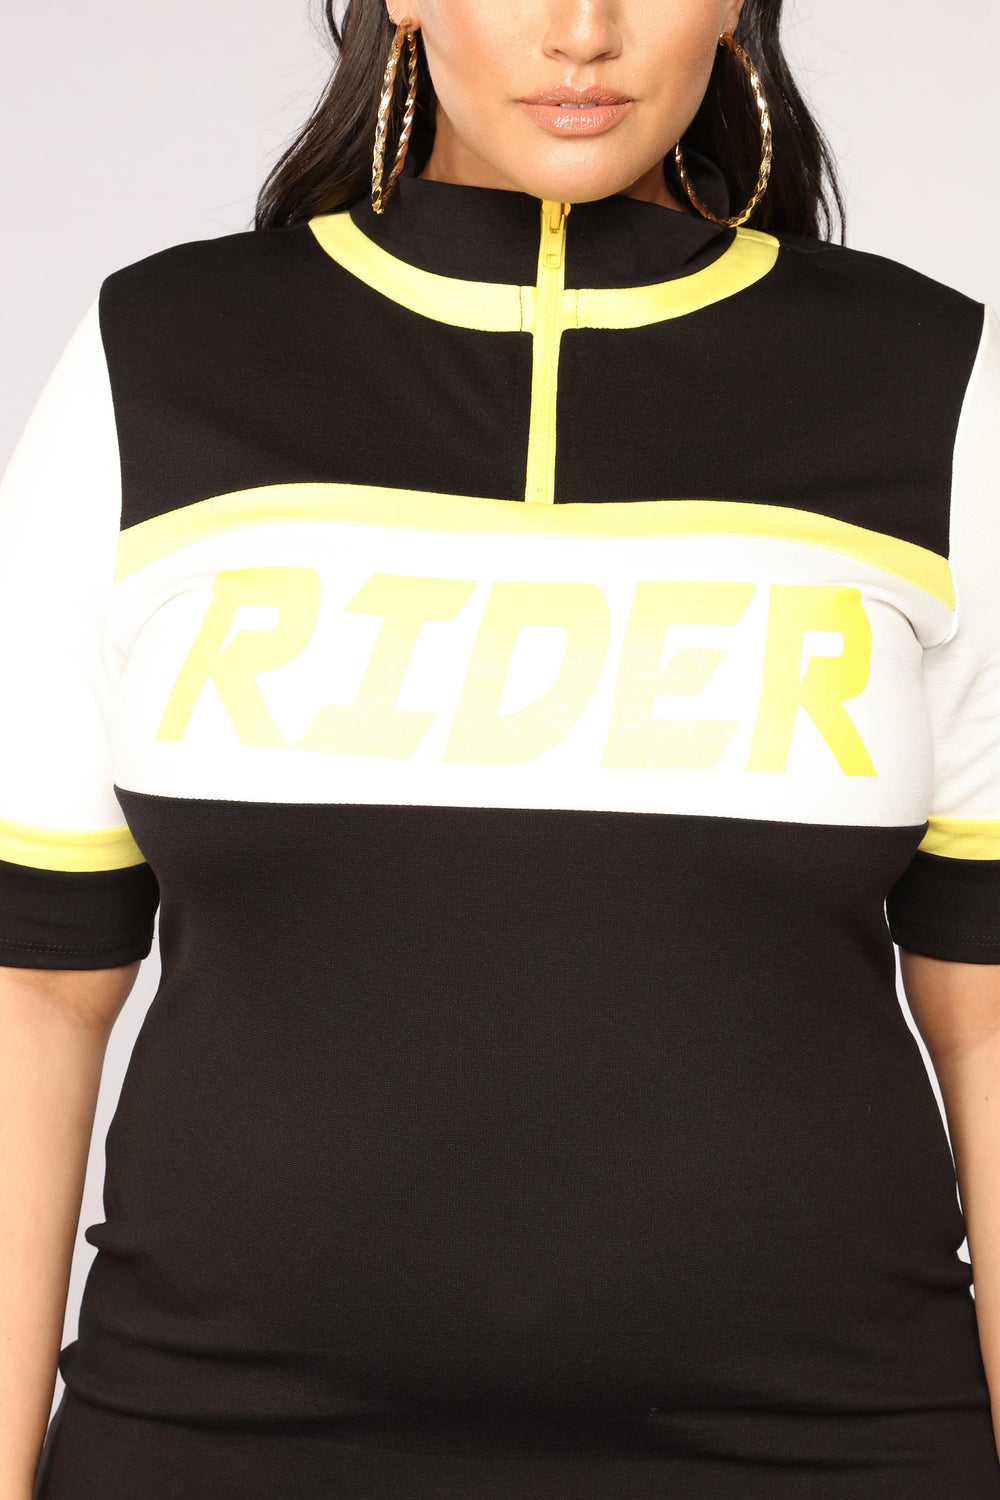 Rider Colorblock Dress - Black/Yellow